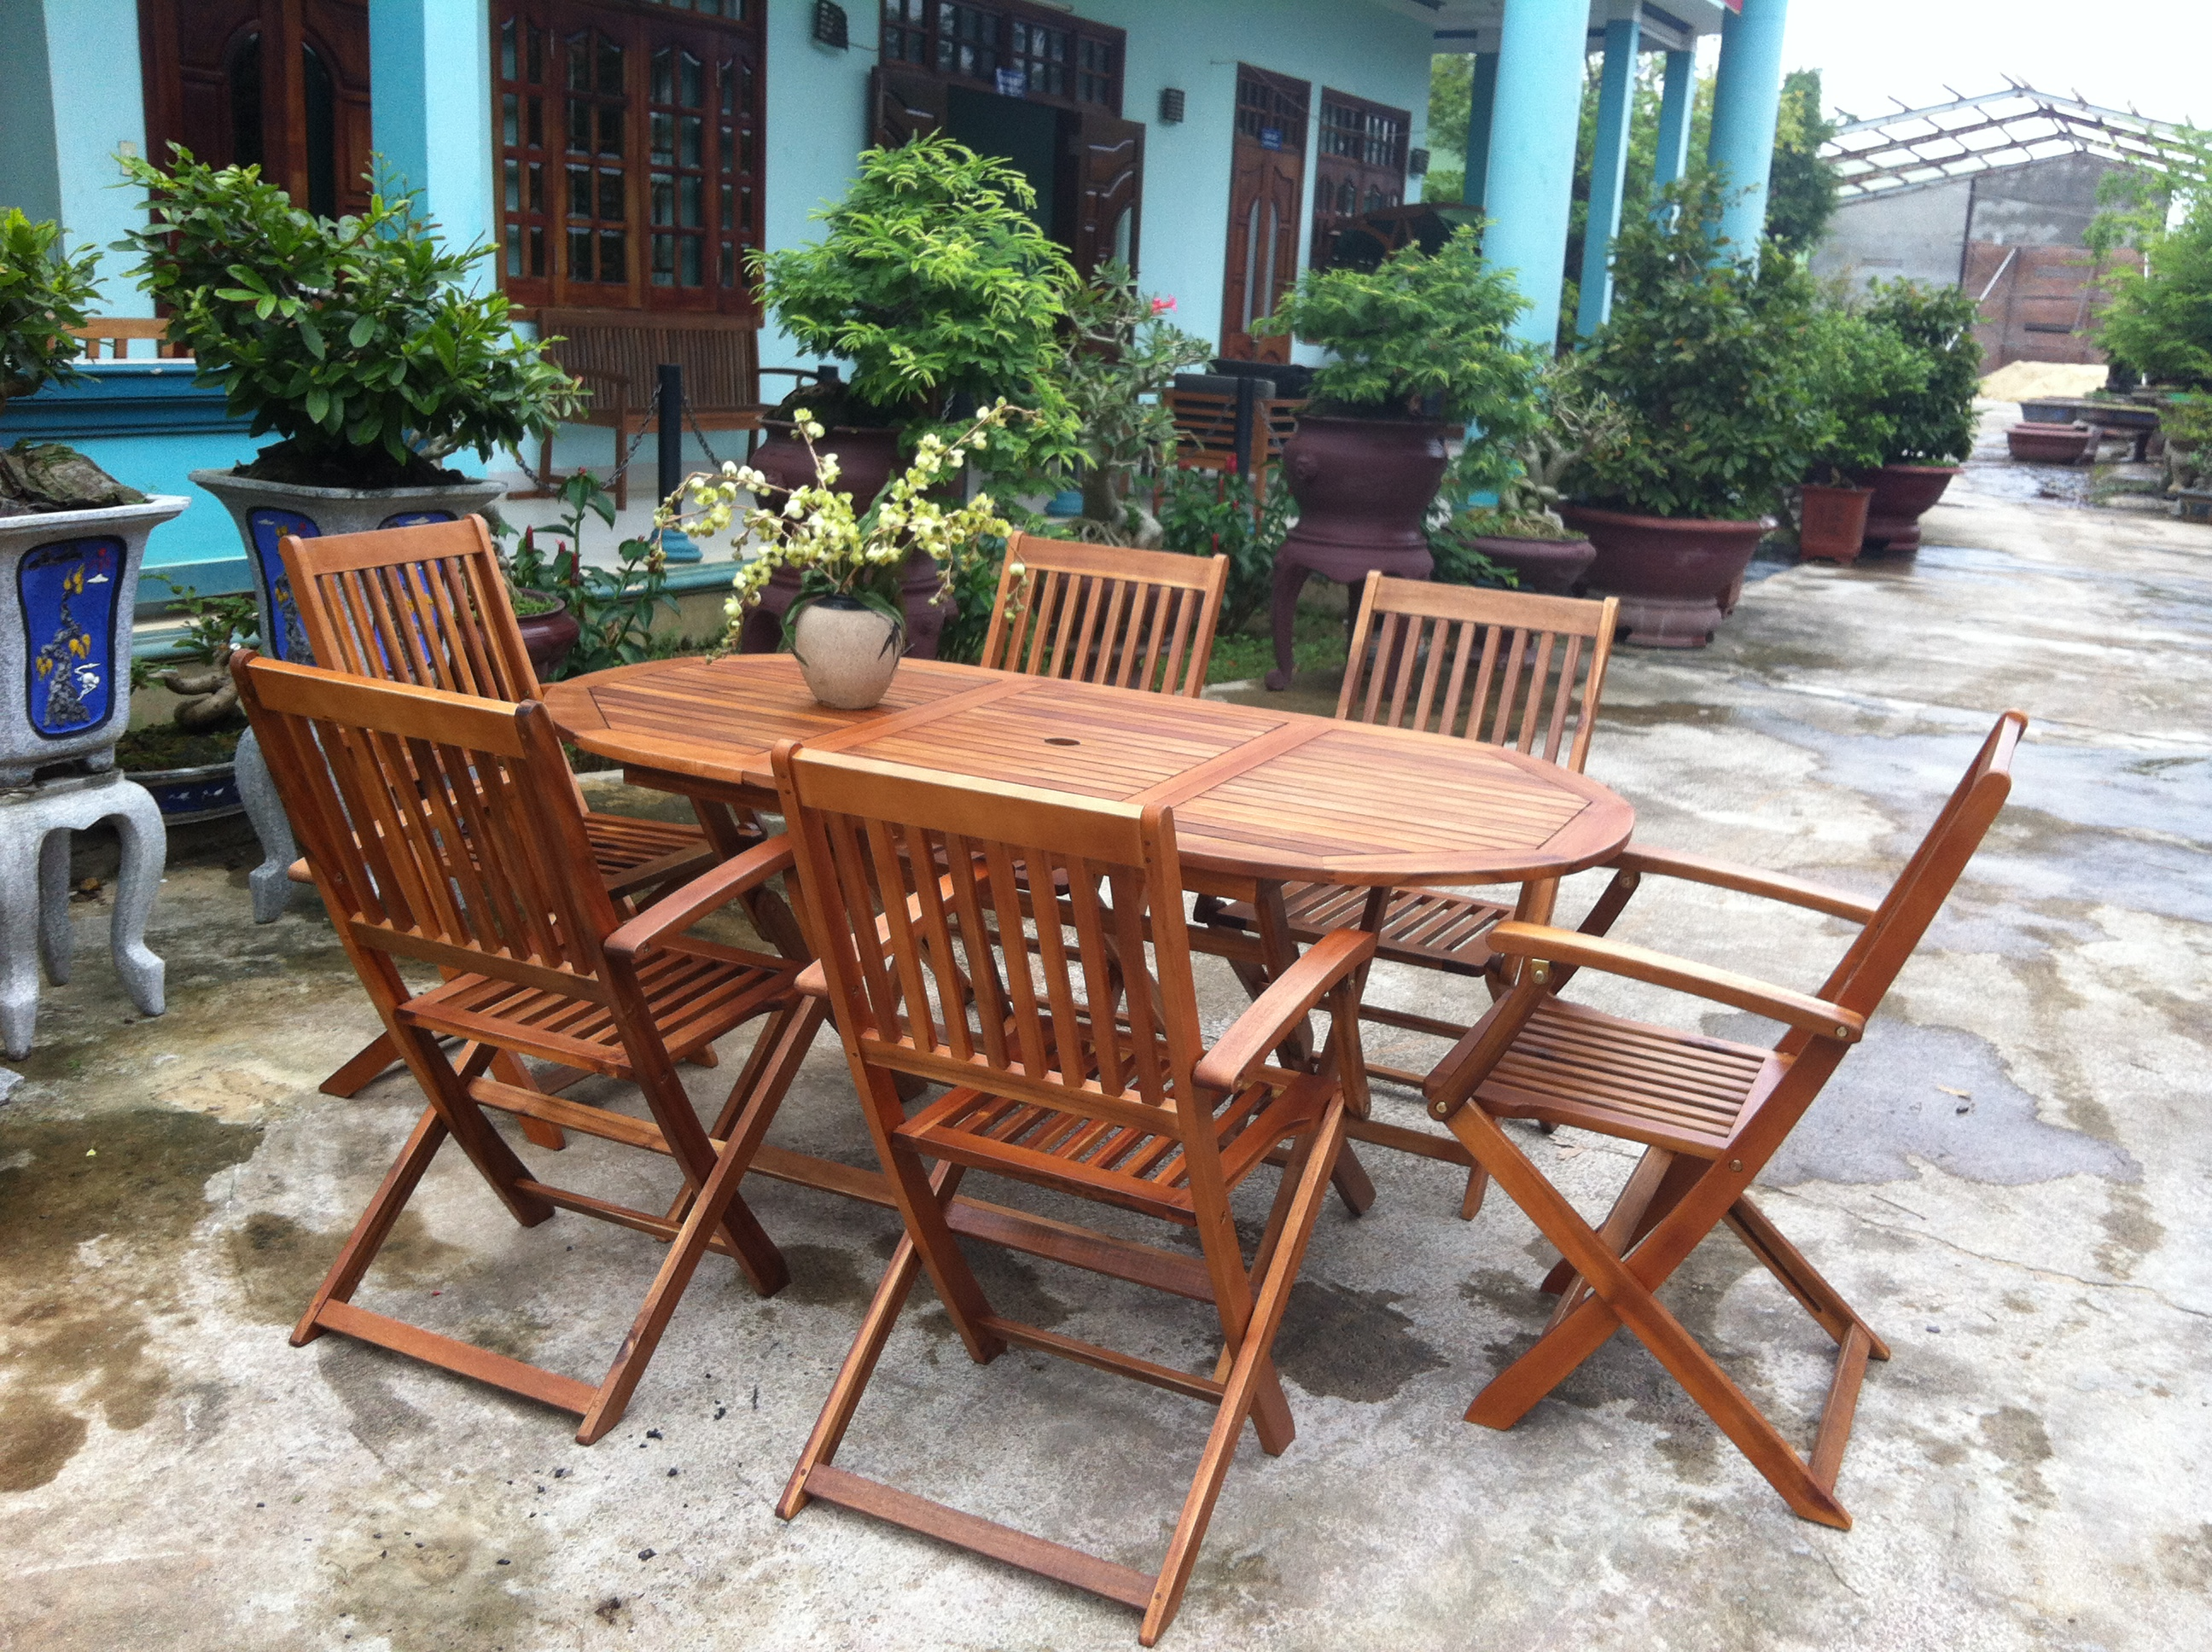 outdoor table and chairs folding. garden oval table \u0026 6 chairs wooden patio outdoor & Outdoor Table And Chairs Folding. Outdoor Table And Chairs Folding A ...